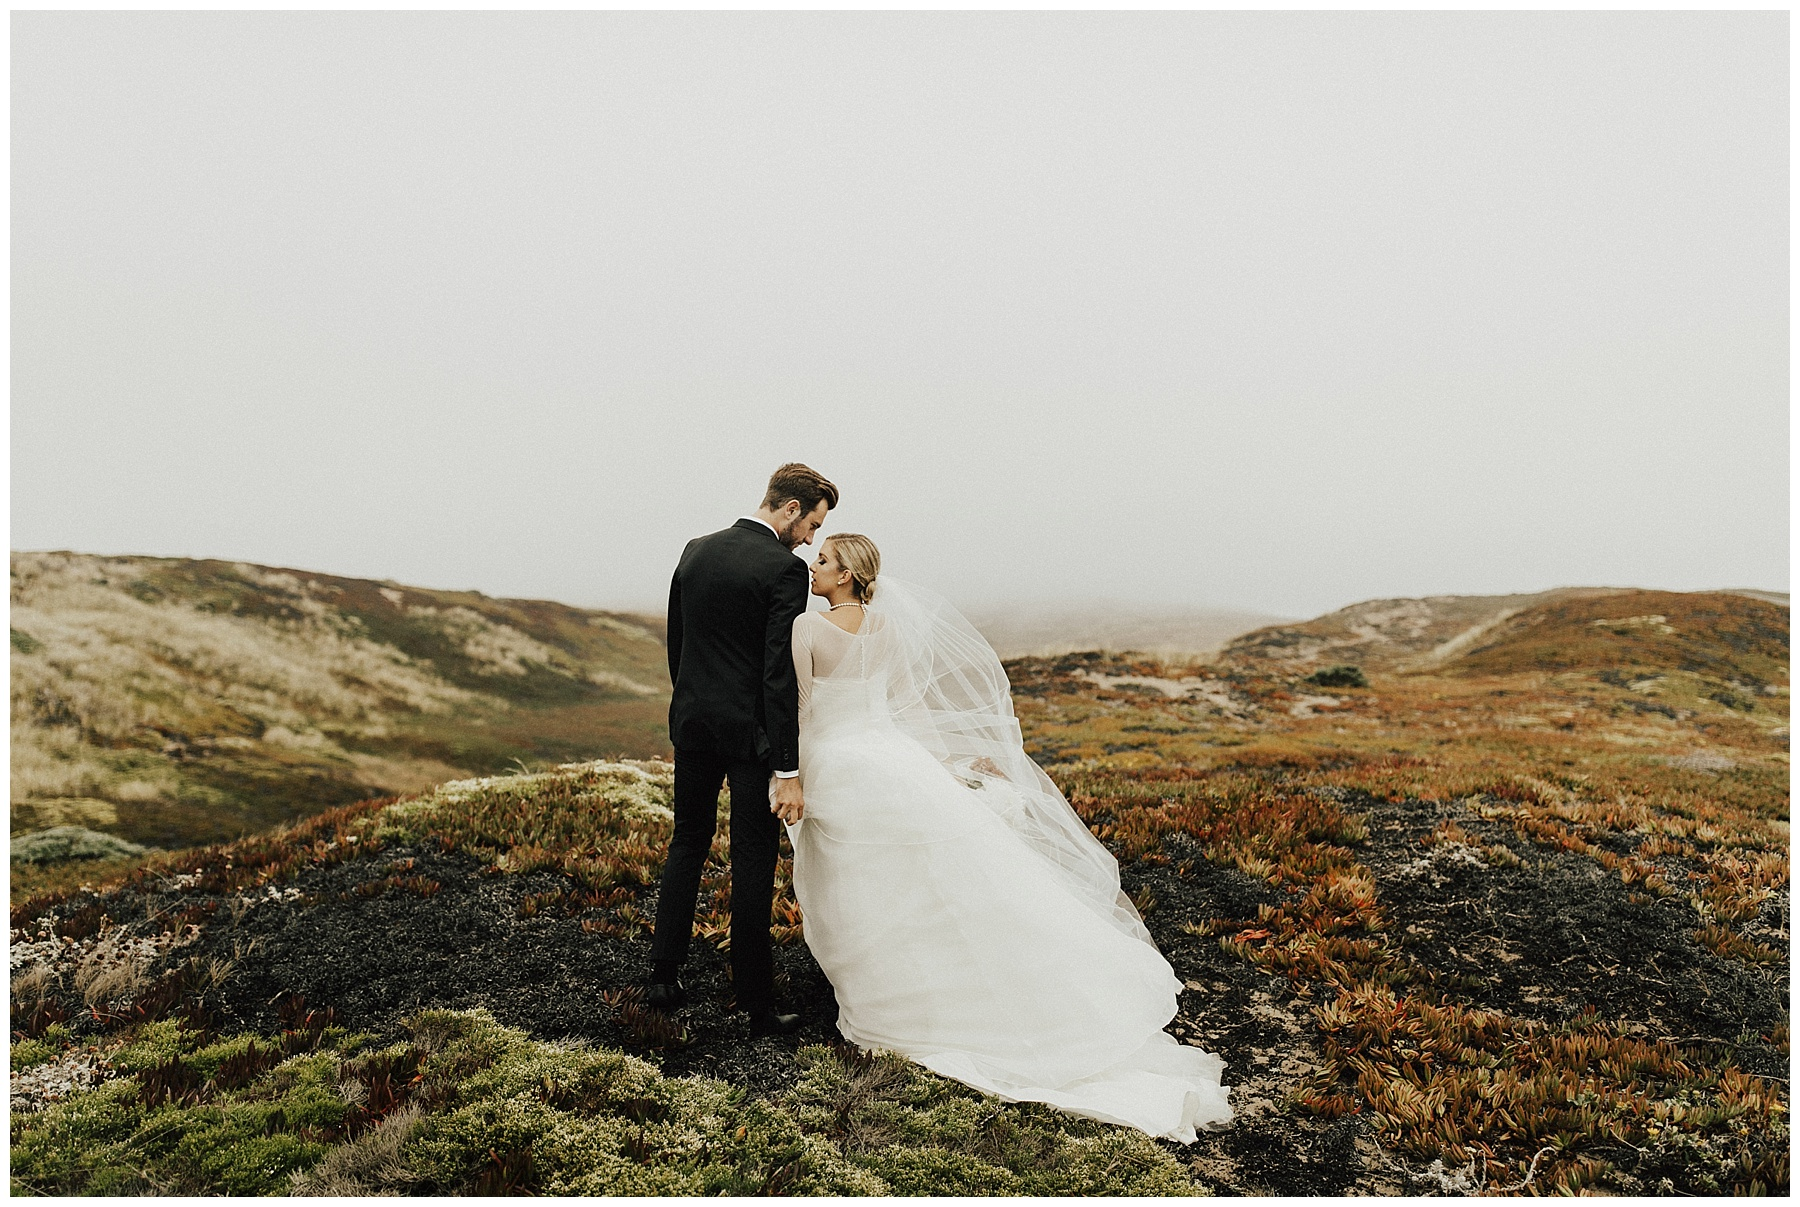 Of Them Before The Wedding Day Out At Point Reyes National Seas They Put Up With Wind And Fog Rain Were Still Giggling Whole Time